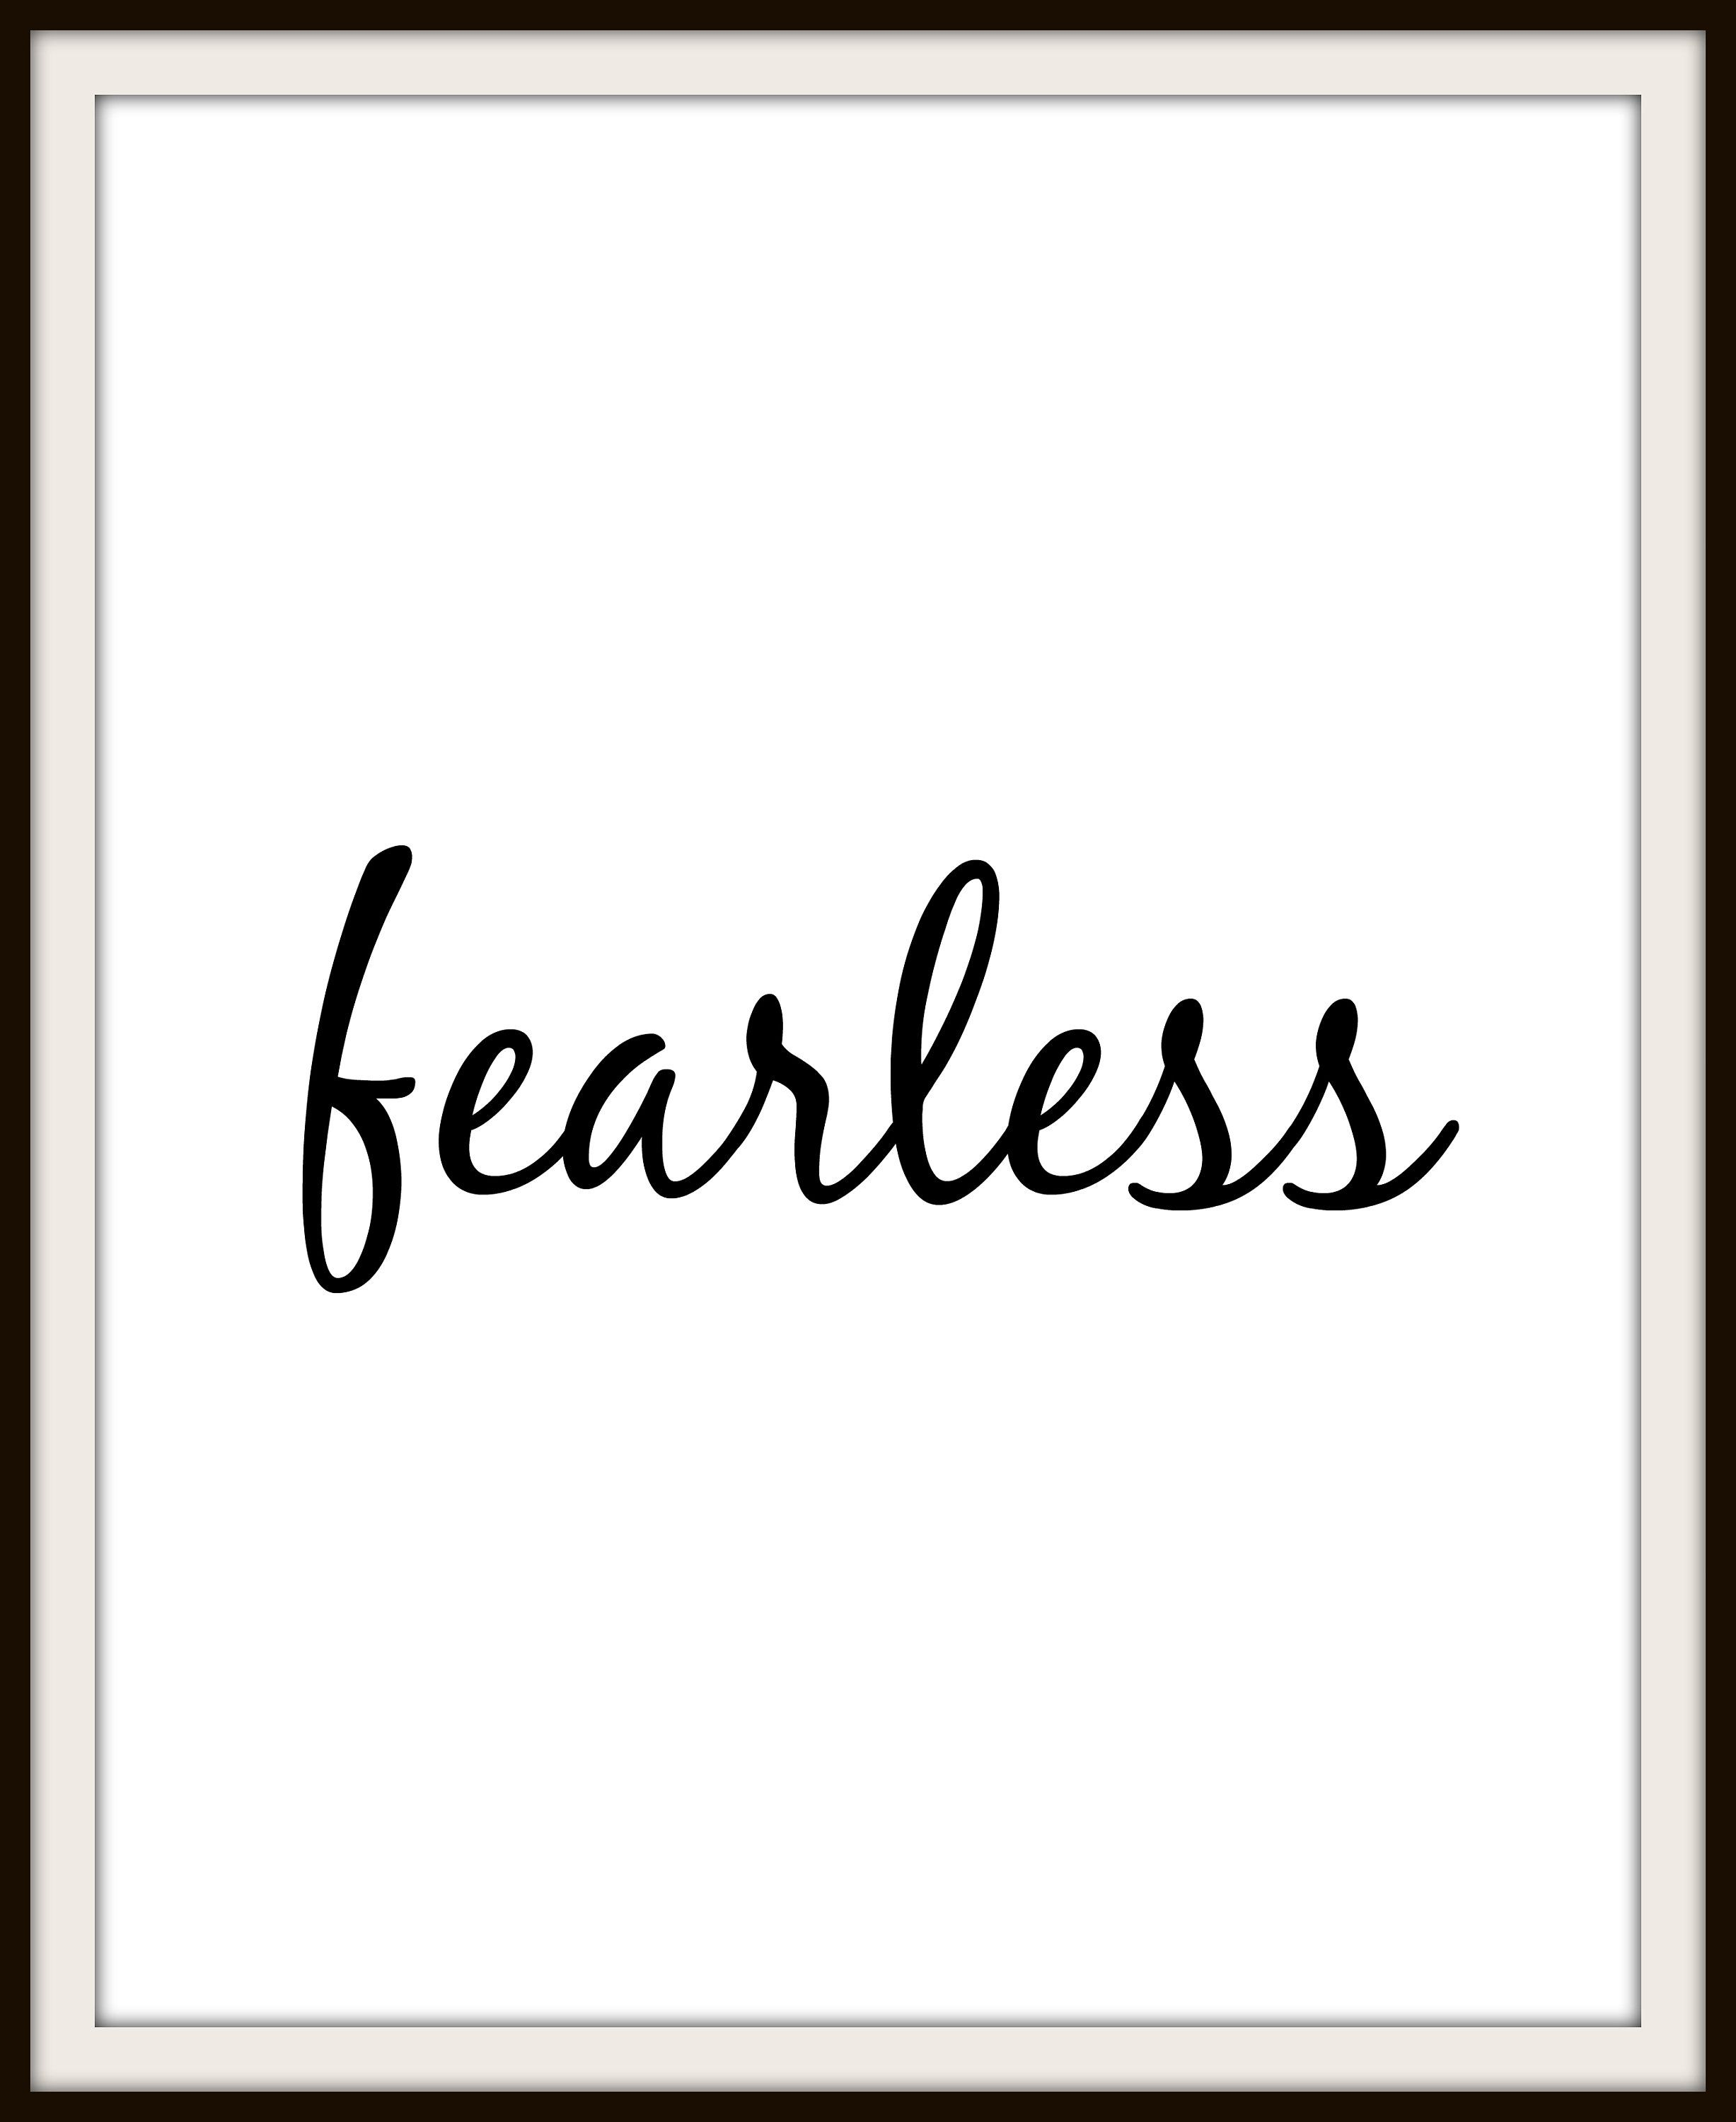 Fearless One Word Print, Printable Wall Art, Home Decor.